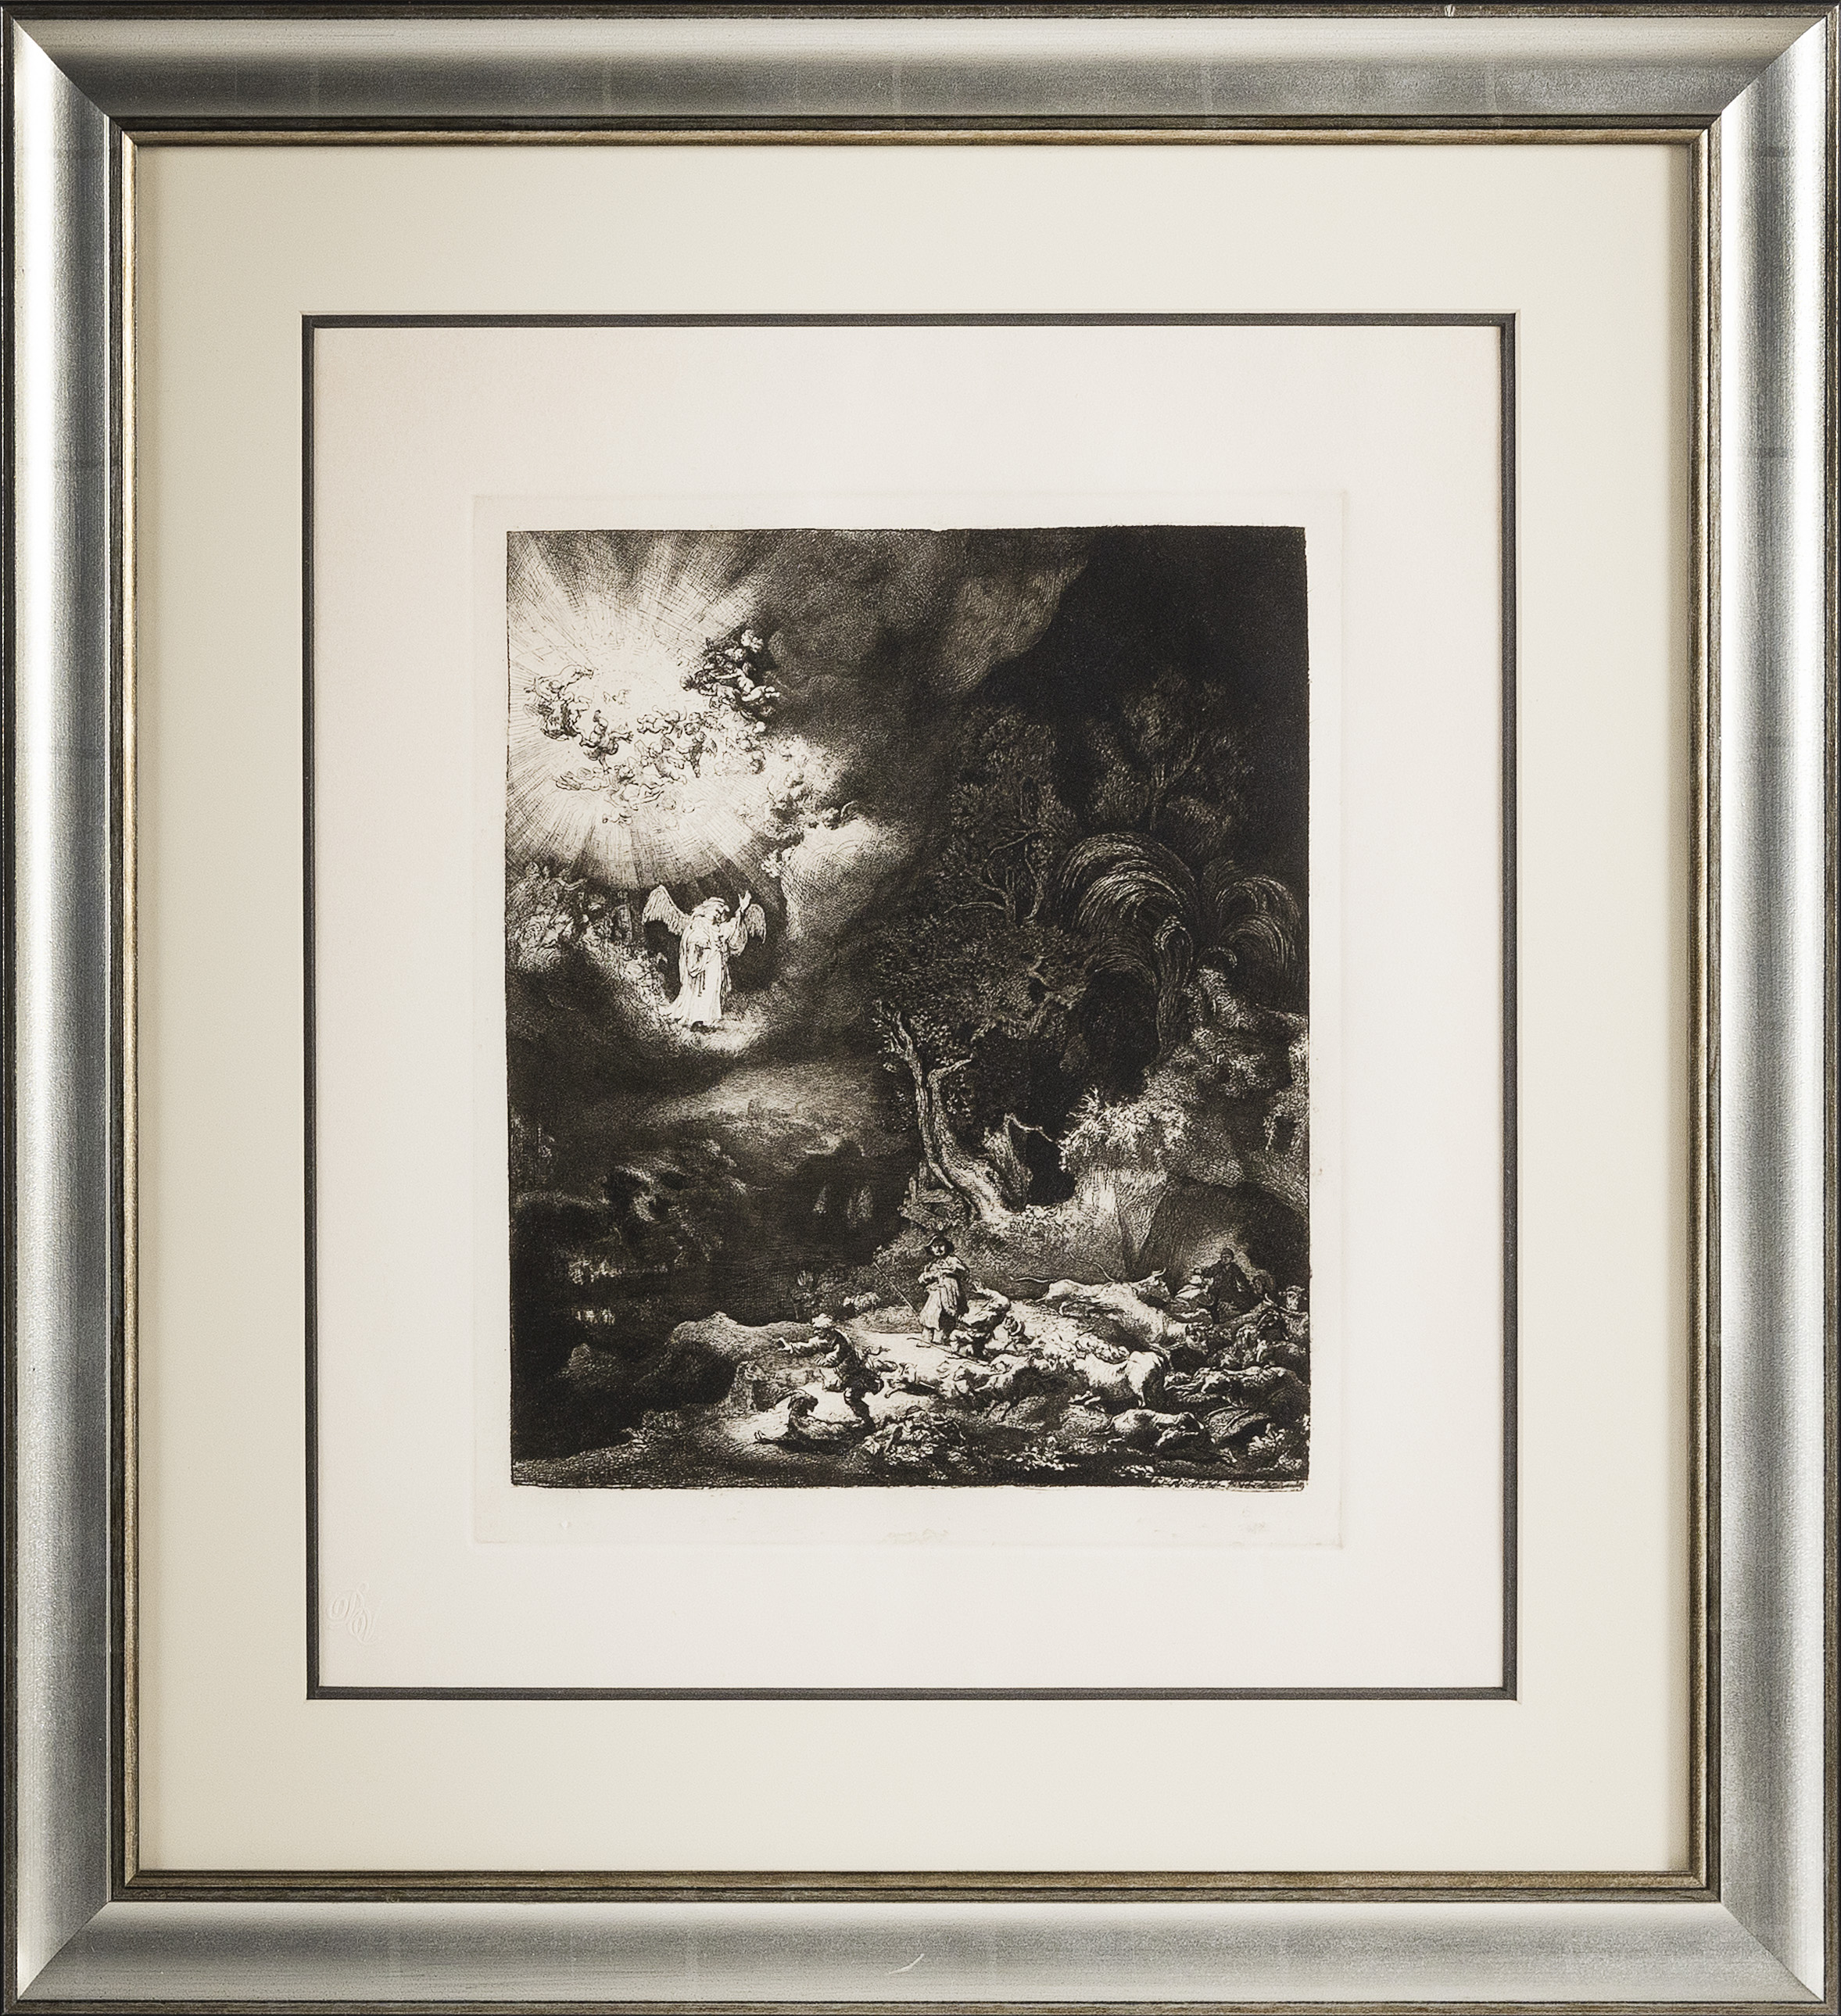 """AMAND-DURAND HELIOGRAVURE AFTER REMBRANDT'S """"ANGEL APPEARING TO THE SHEPHERDS"""" Plate 285mm x 235mm. Framed 21.5"""" x 19.5""""."""